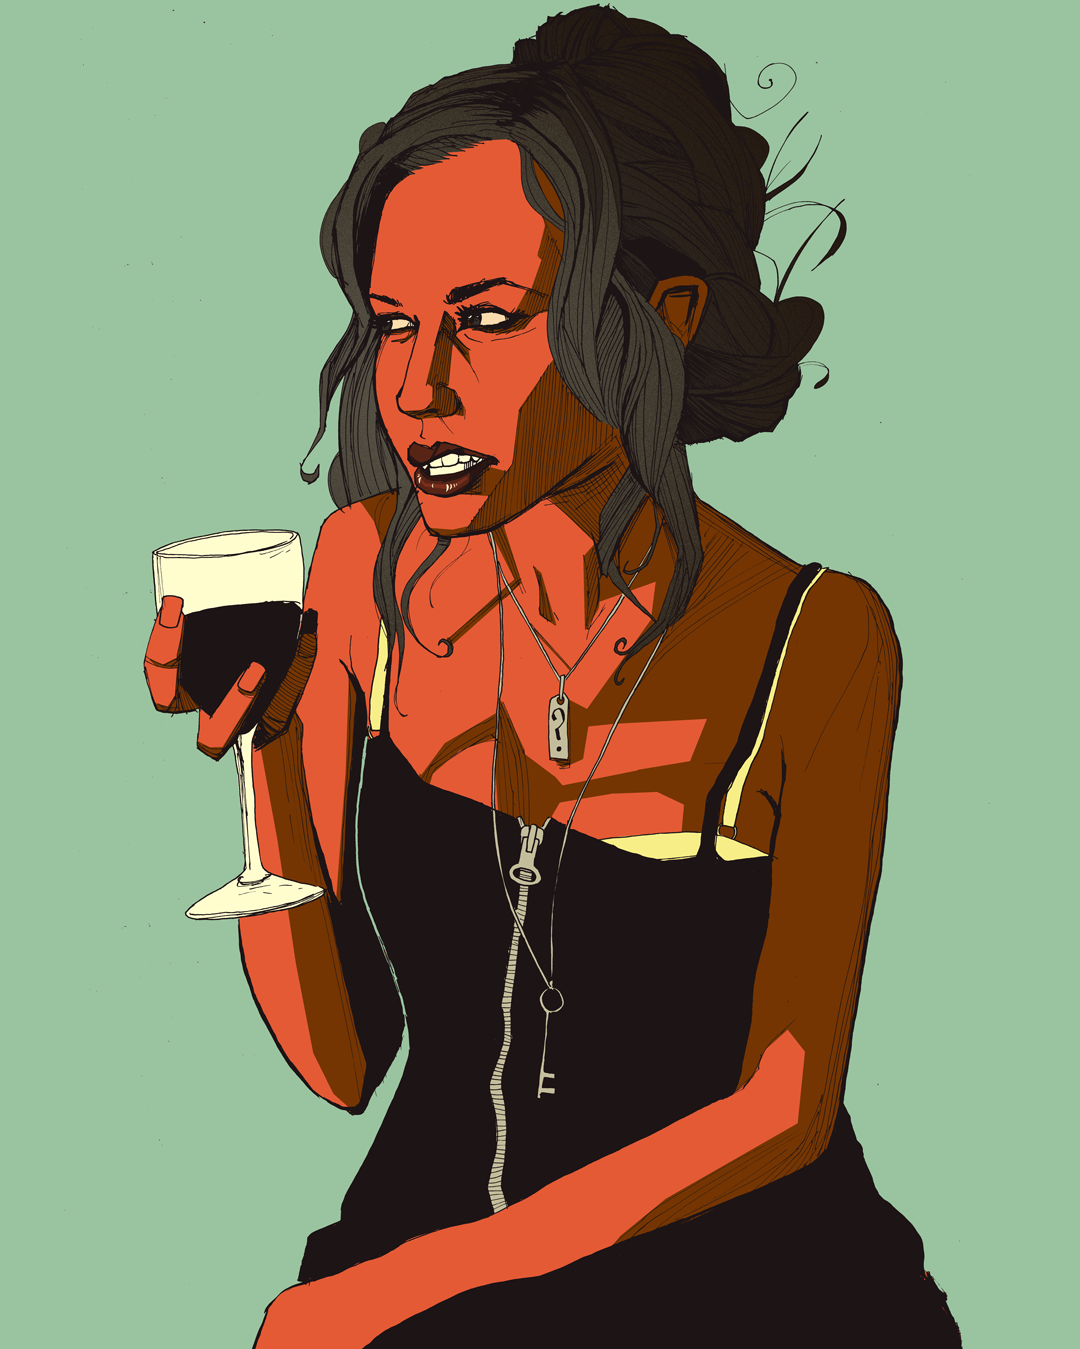 art pretty girl drinking wine drawing